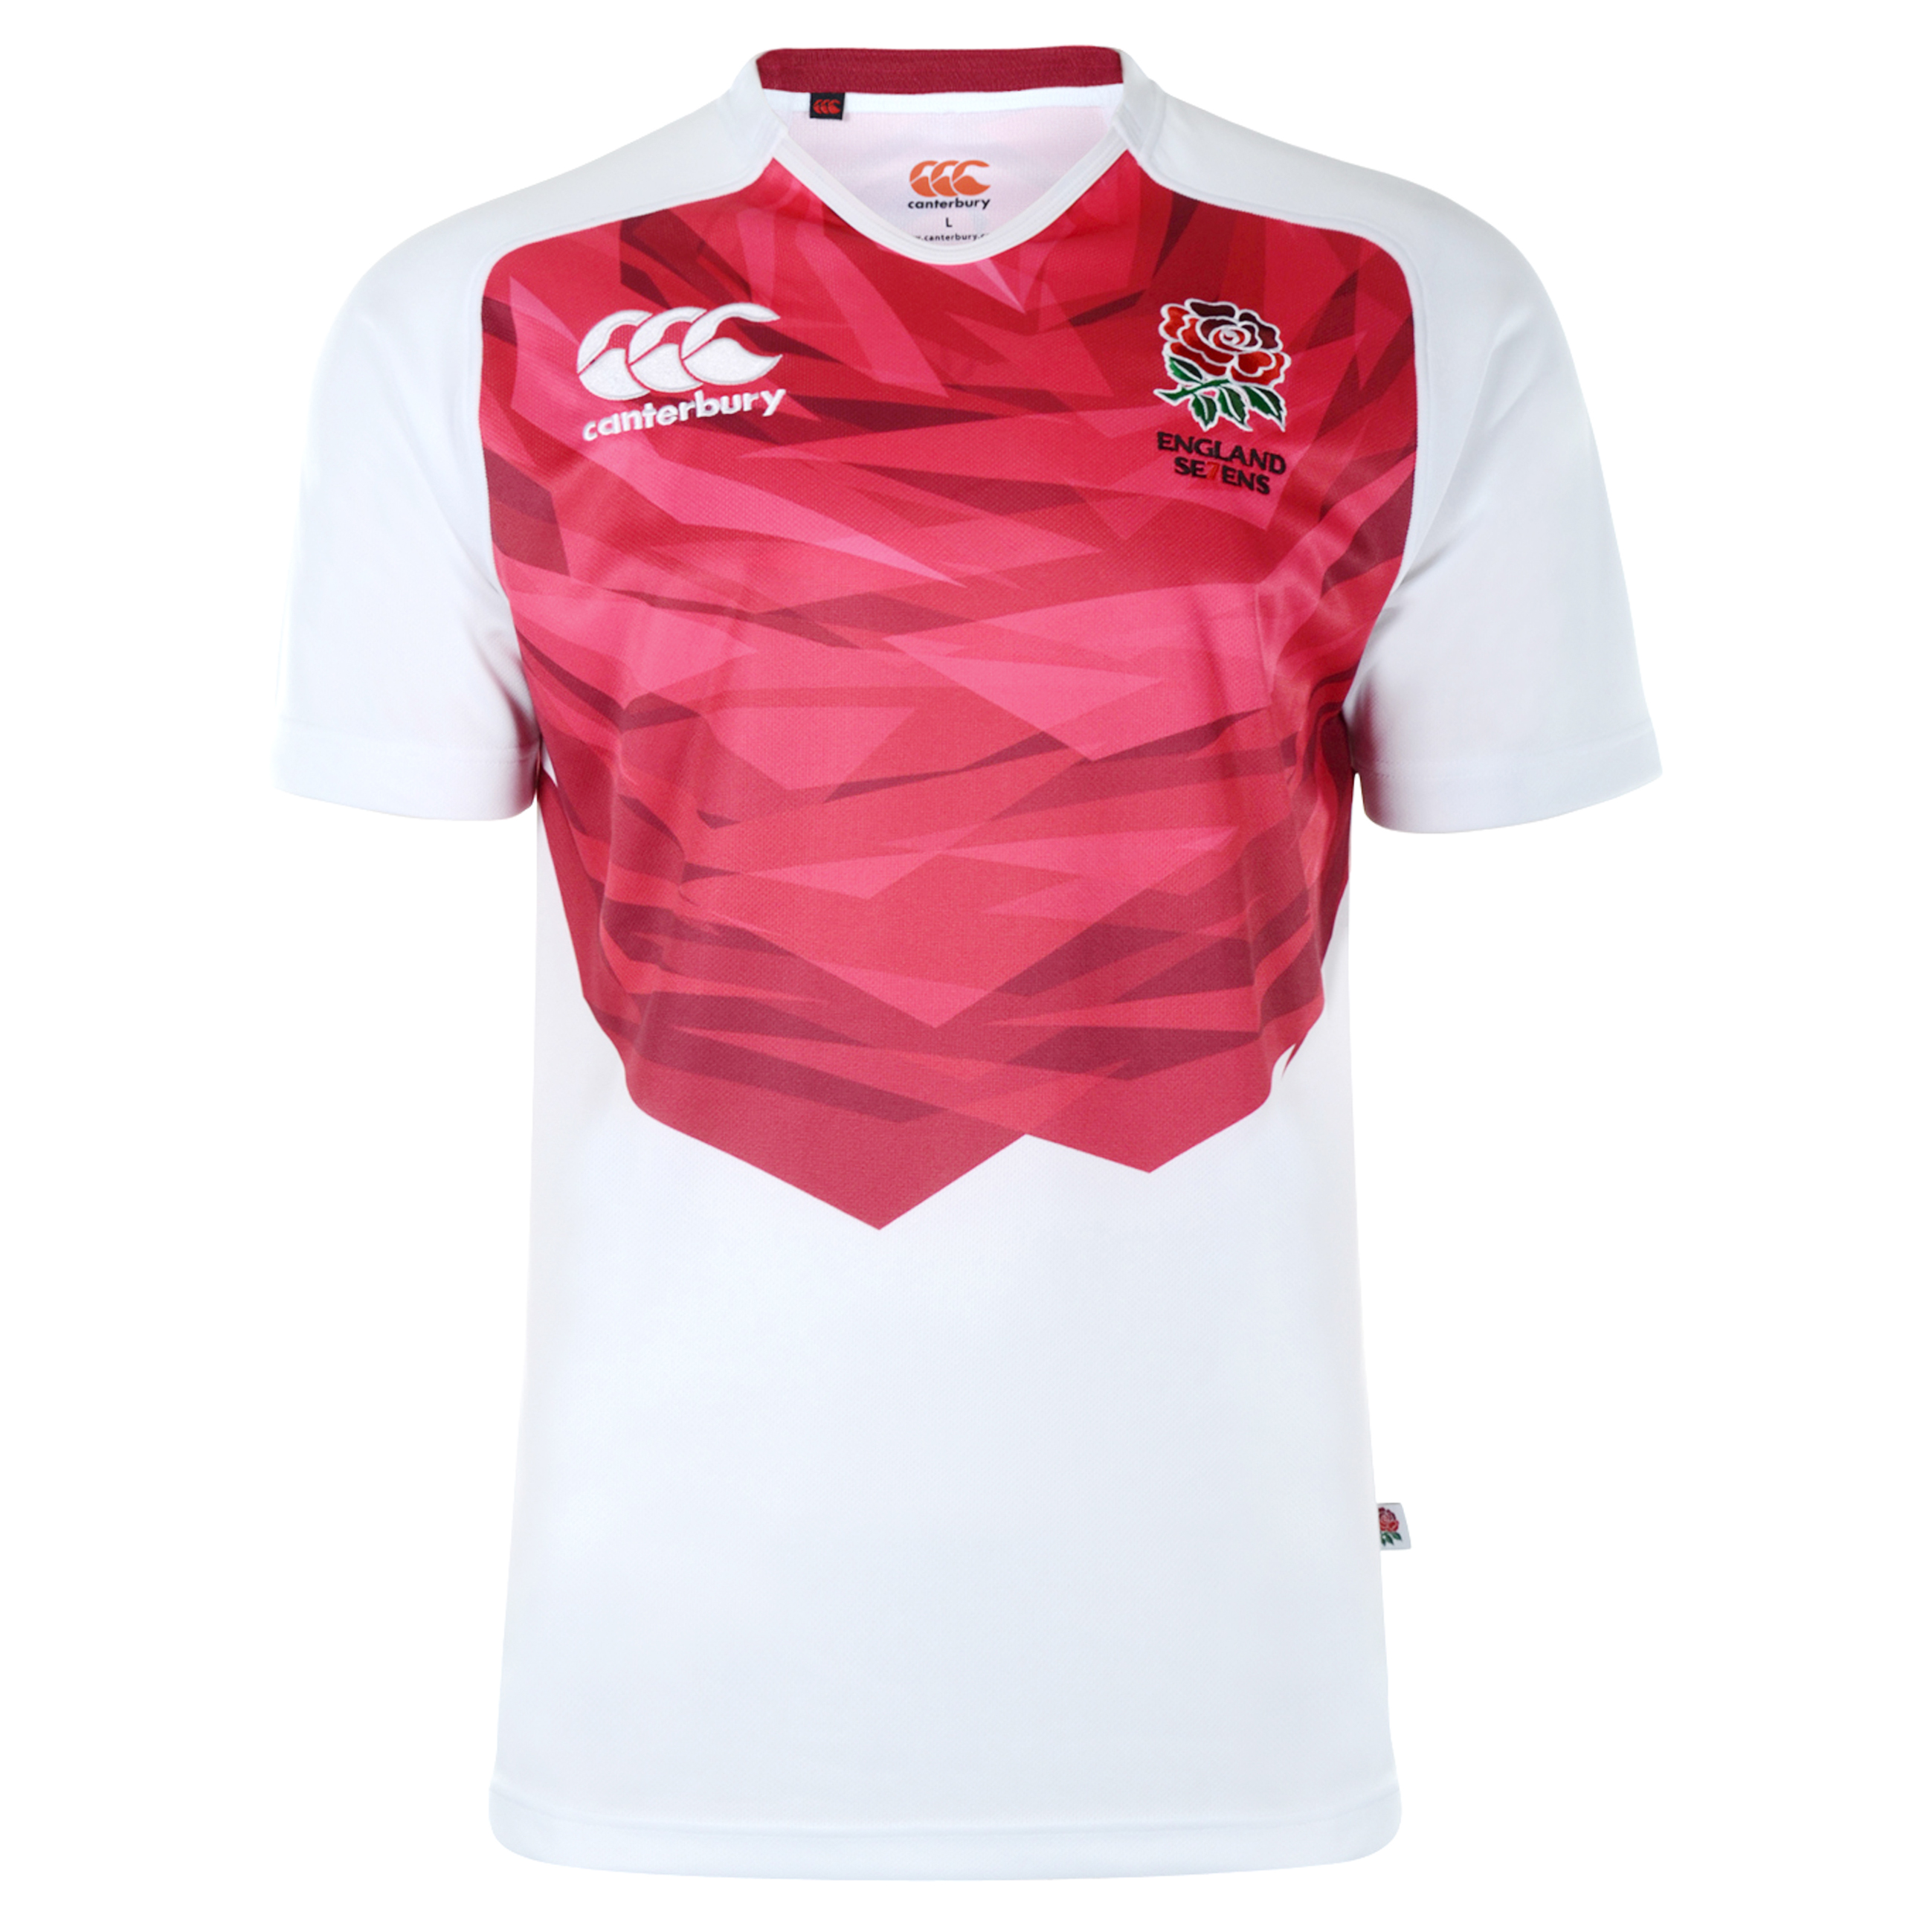 England Home Sevens Rugby Pro Shirt 2012/13 S/S